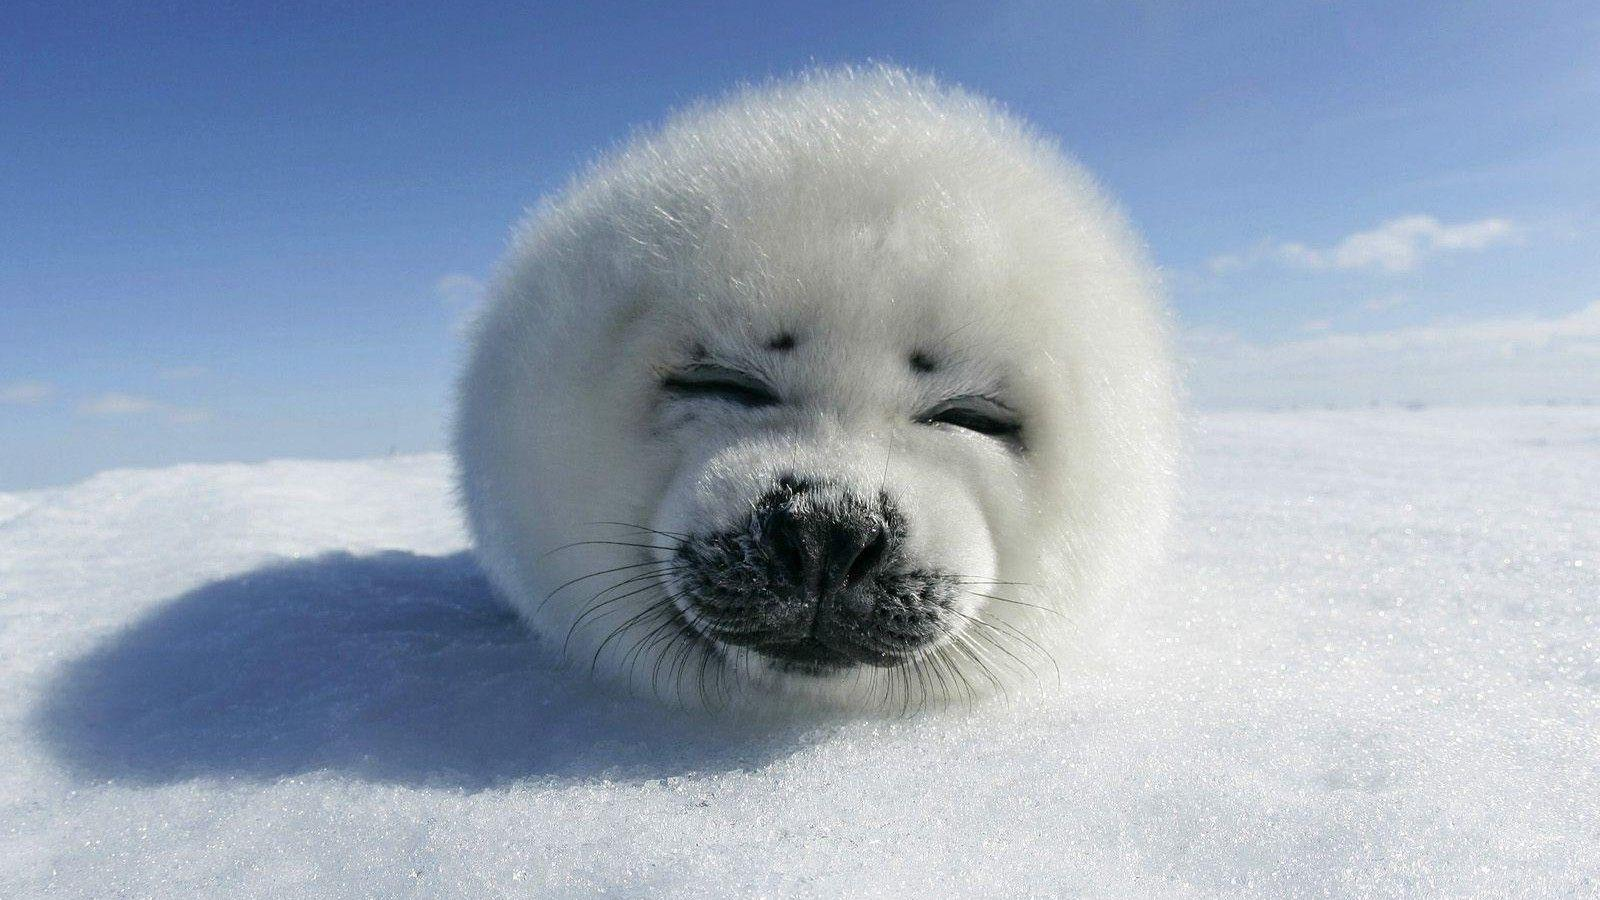 Baby Seal Wallpapers Baby Seal Images and Wallpapers for Mac